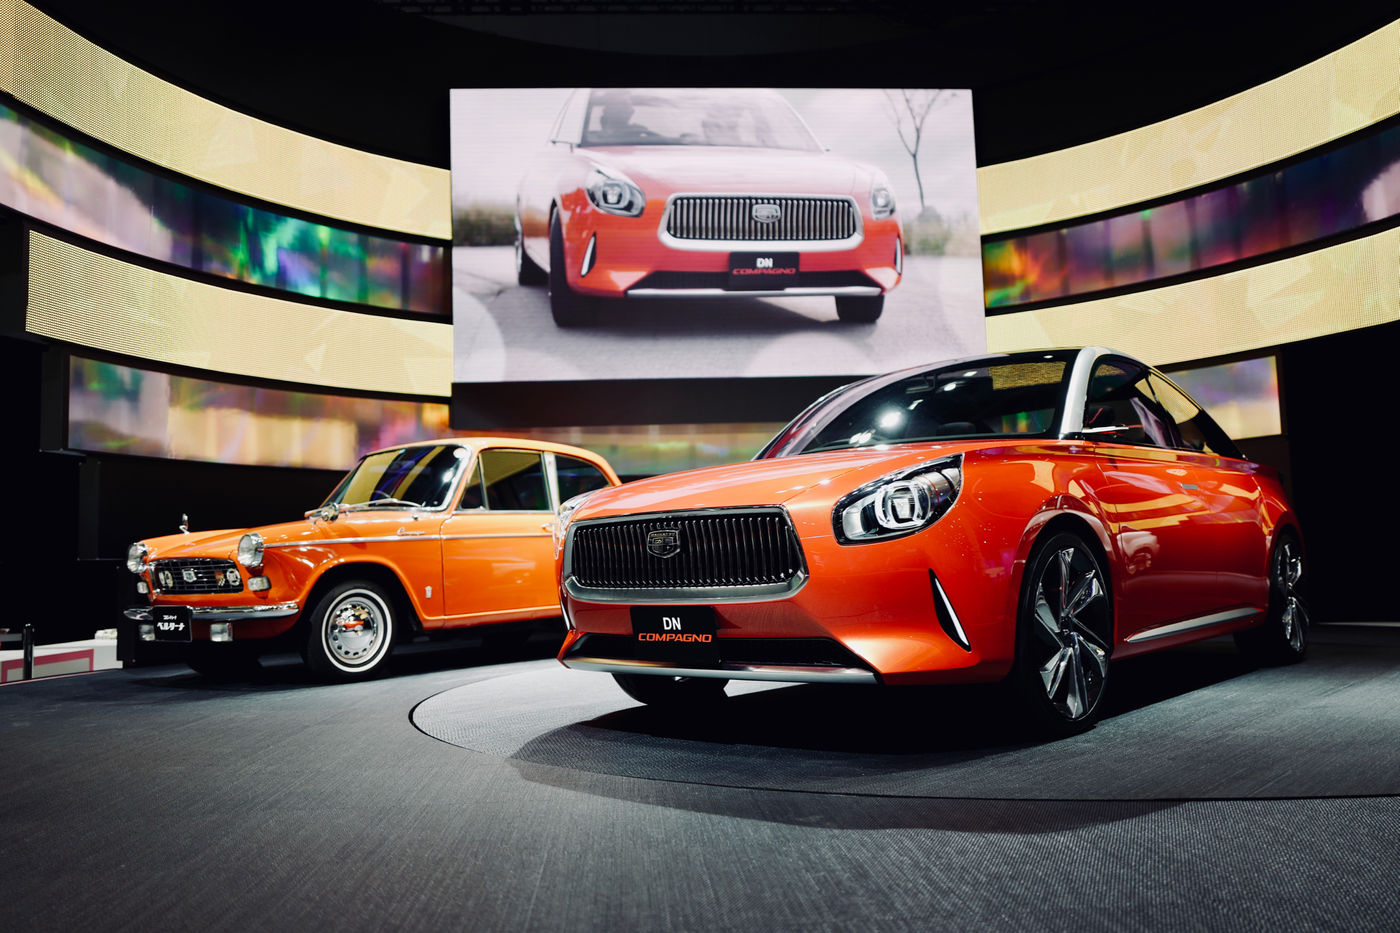 """TMS2017 World Premiere DN COMPAGNO DAIHATSU Stage Retro Future / Though DN COMPAGNO was the compactness of """"DAIHATSU Compagno"""" Debut in 1963, It succeeded to a stylish design thought. A power train, 1,000 cc Turbo (1,200 cc It's also possible to load with a hybrid.) DAIHATSU Official announce. Concept Car DNコンパーノ Elegant Tokyo Motor Show 2017 Begin Again Car Daihatsu Land Vehicle Motor Show Orange Red Transportation ダイハツ 東京モーターショー2017"""